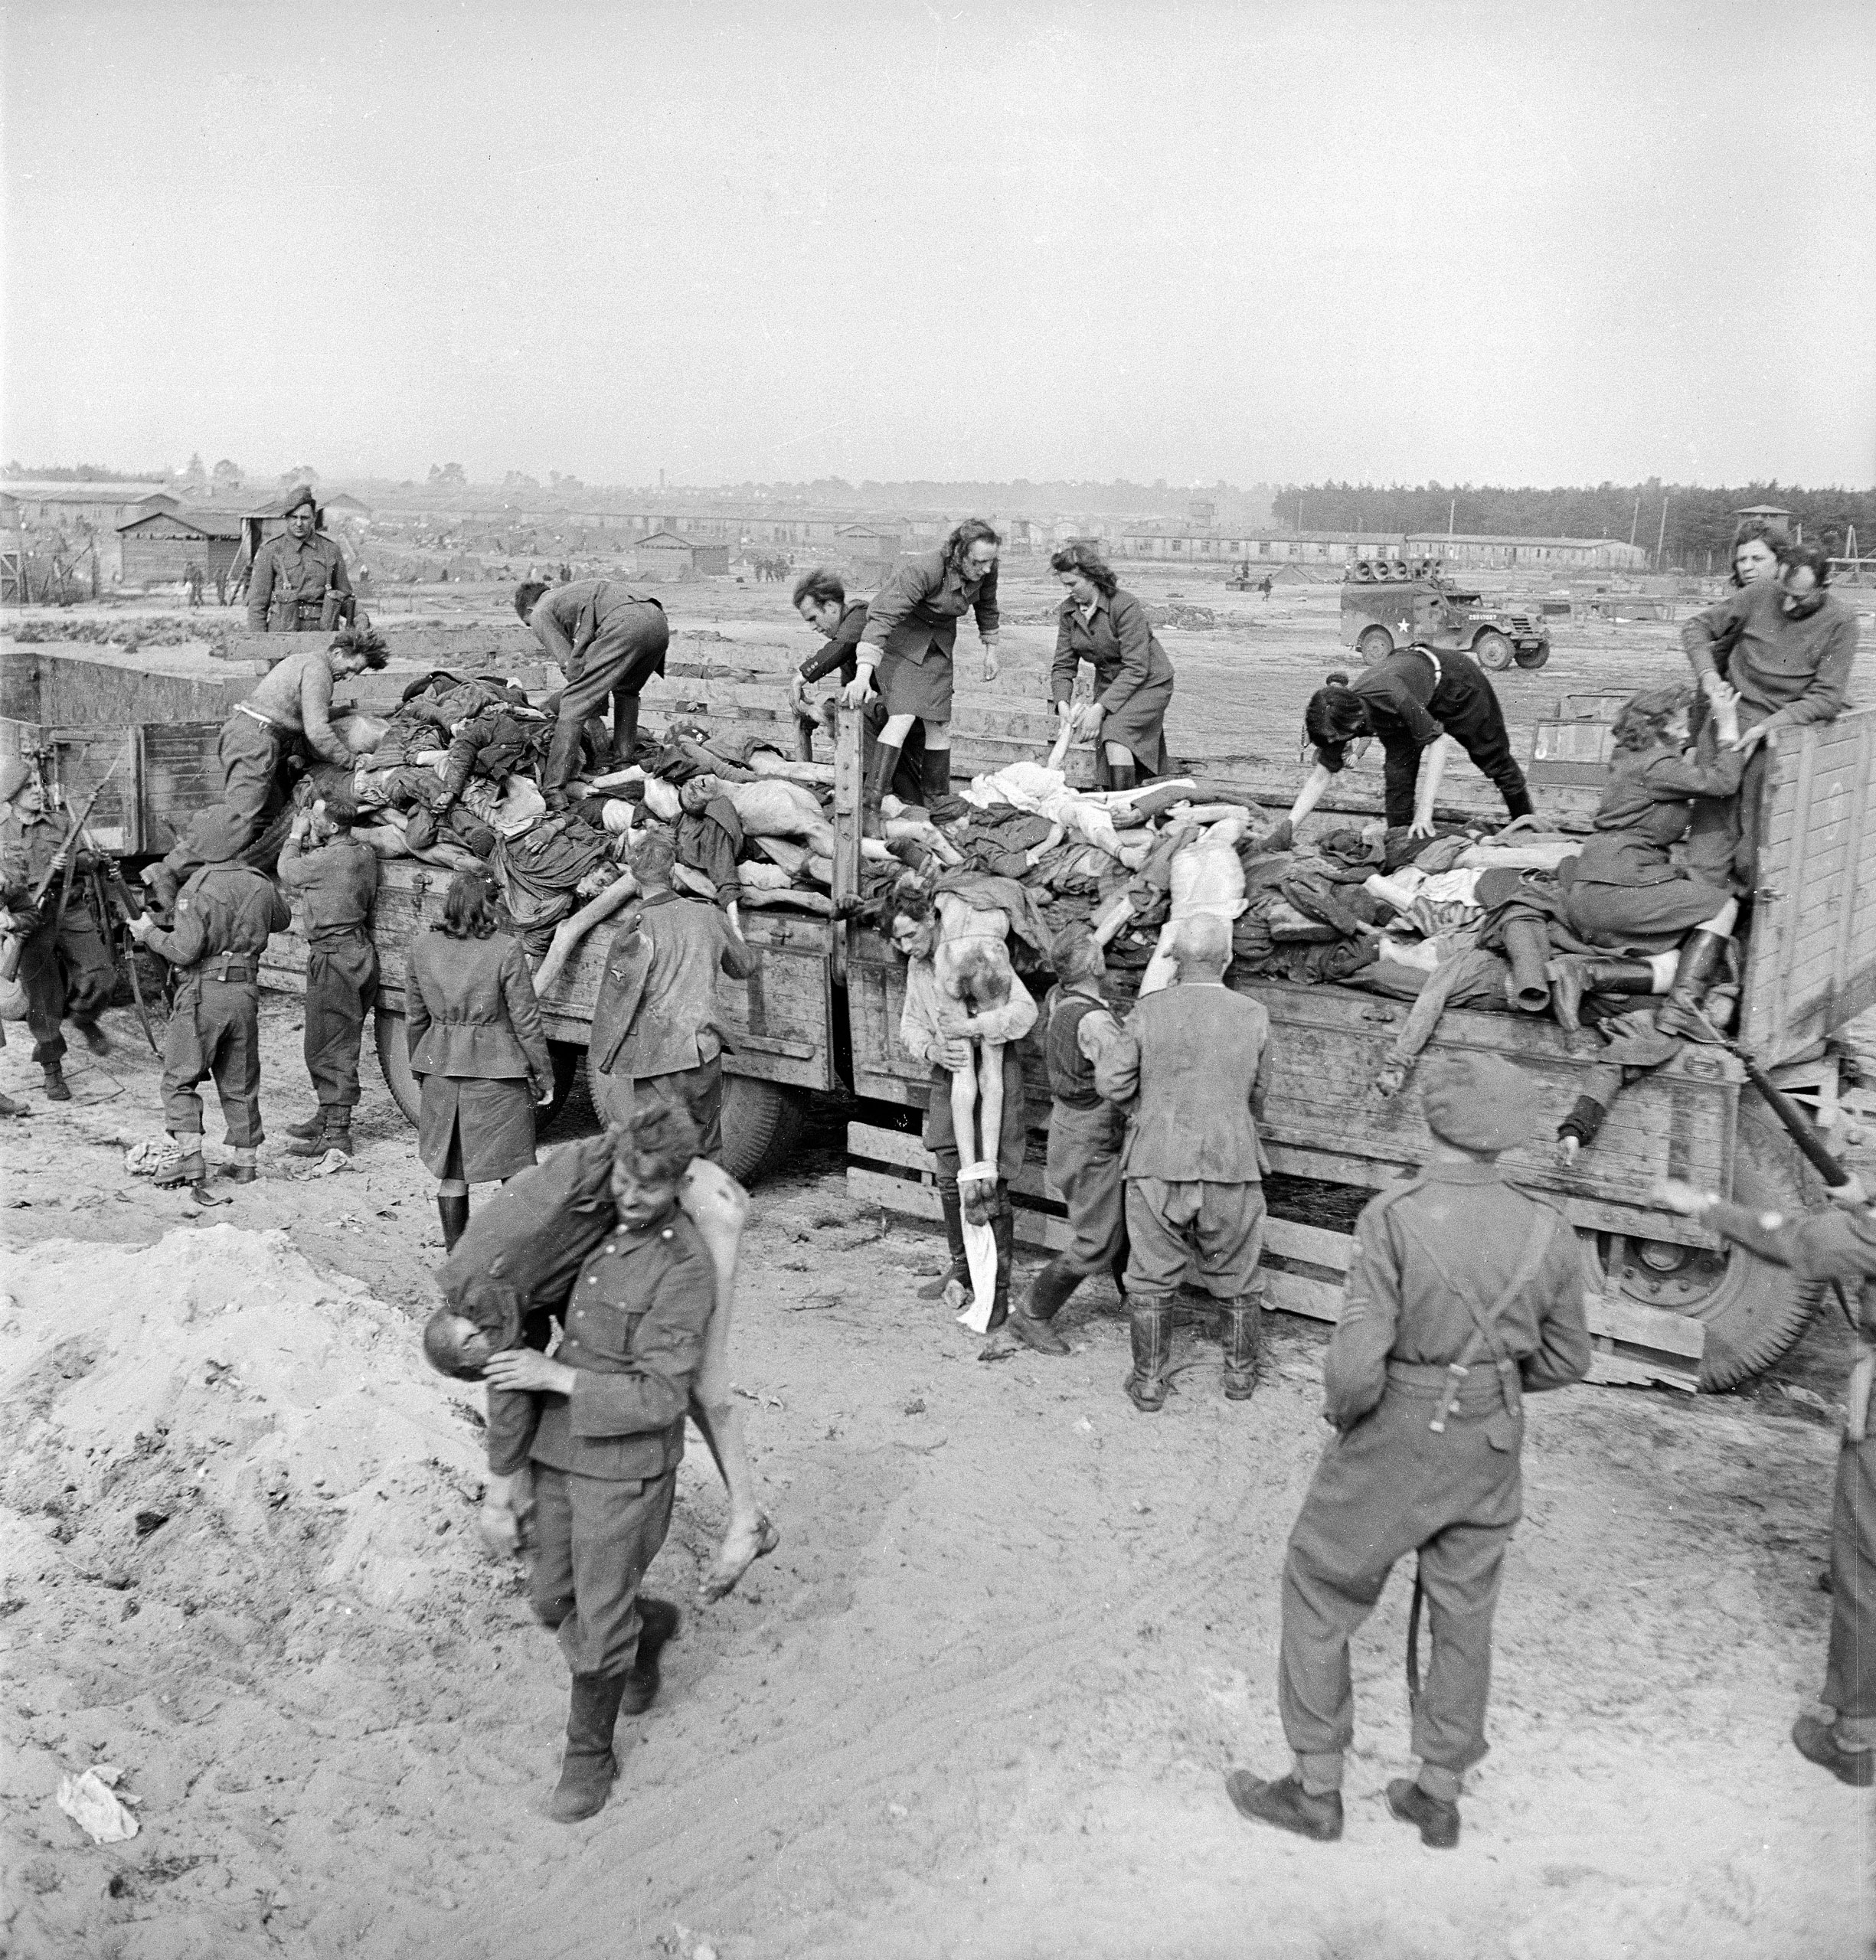 Male and female German SS soldiers forced to load corpses onto trucks under British guard at the Bergen-Belsen concentration camp, 1945.